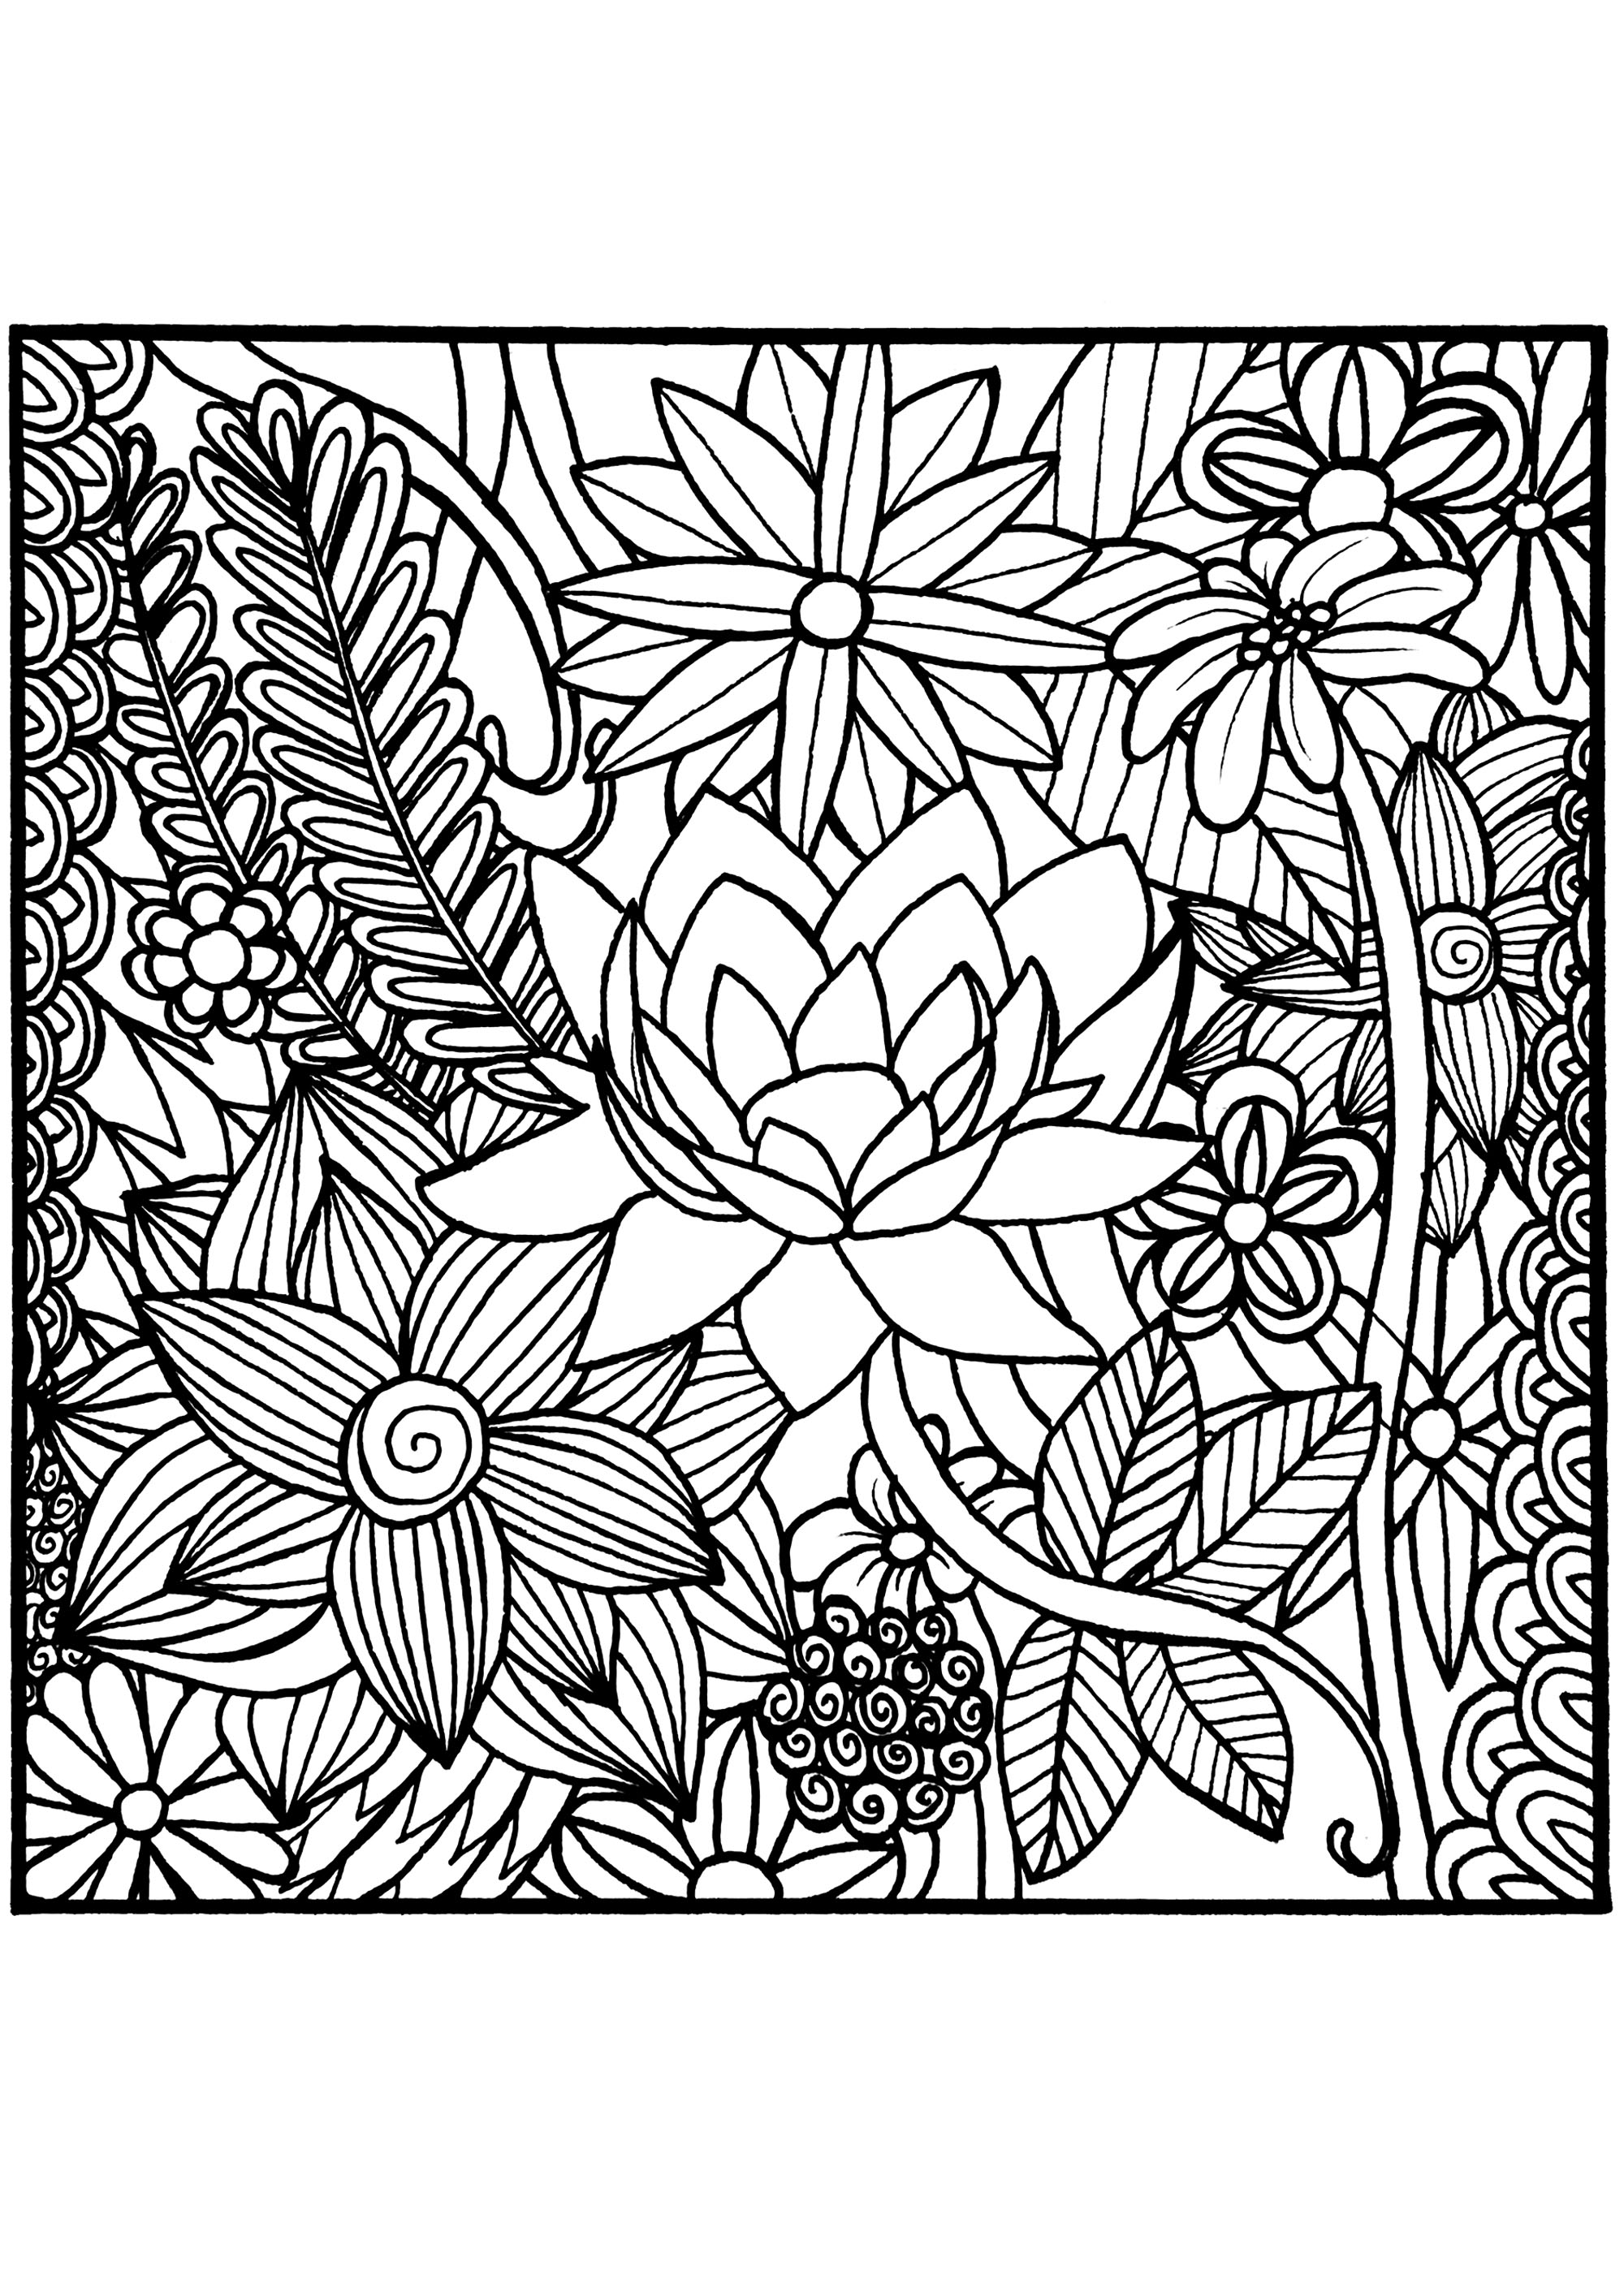 flower coloring pages adults flower celine flowers adult coloring pages coloring pages adults flower